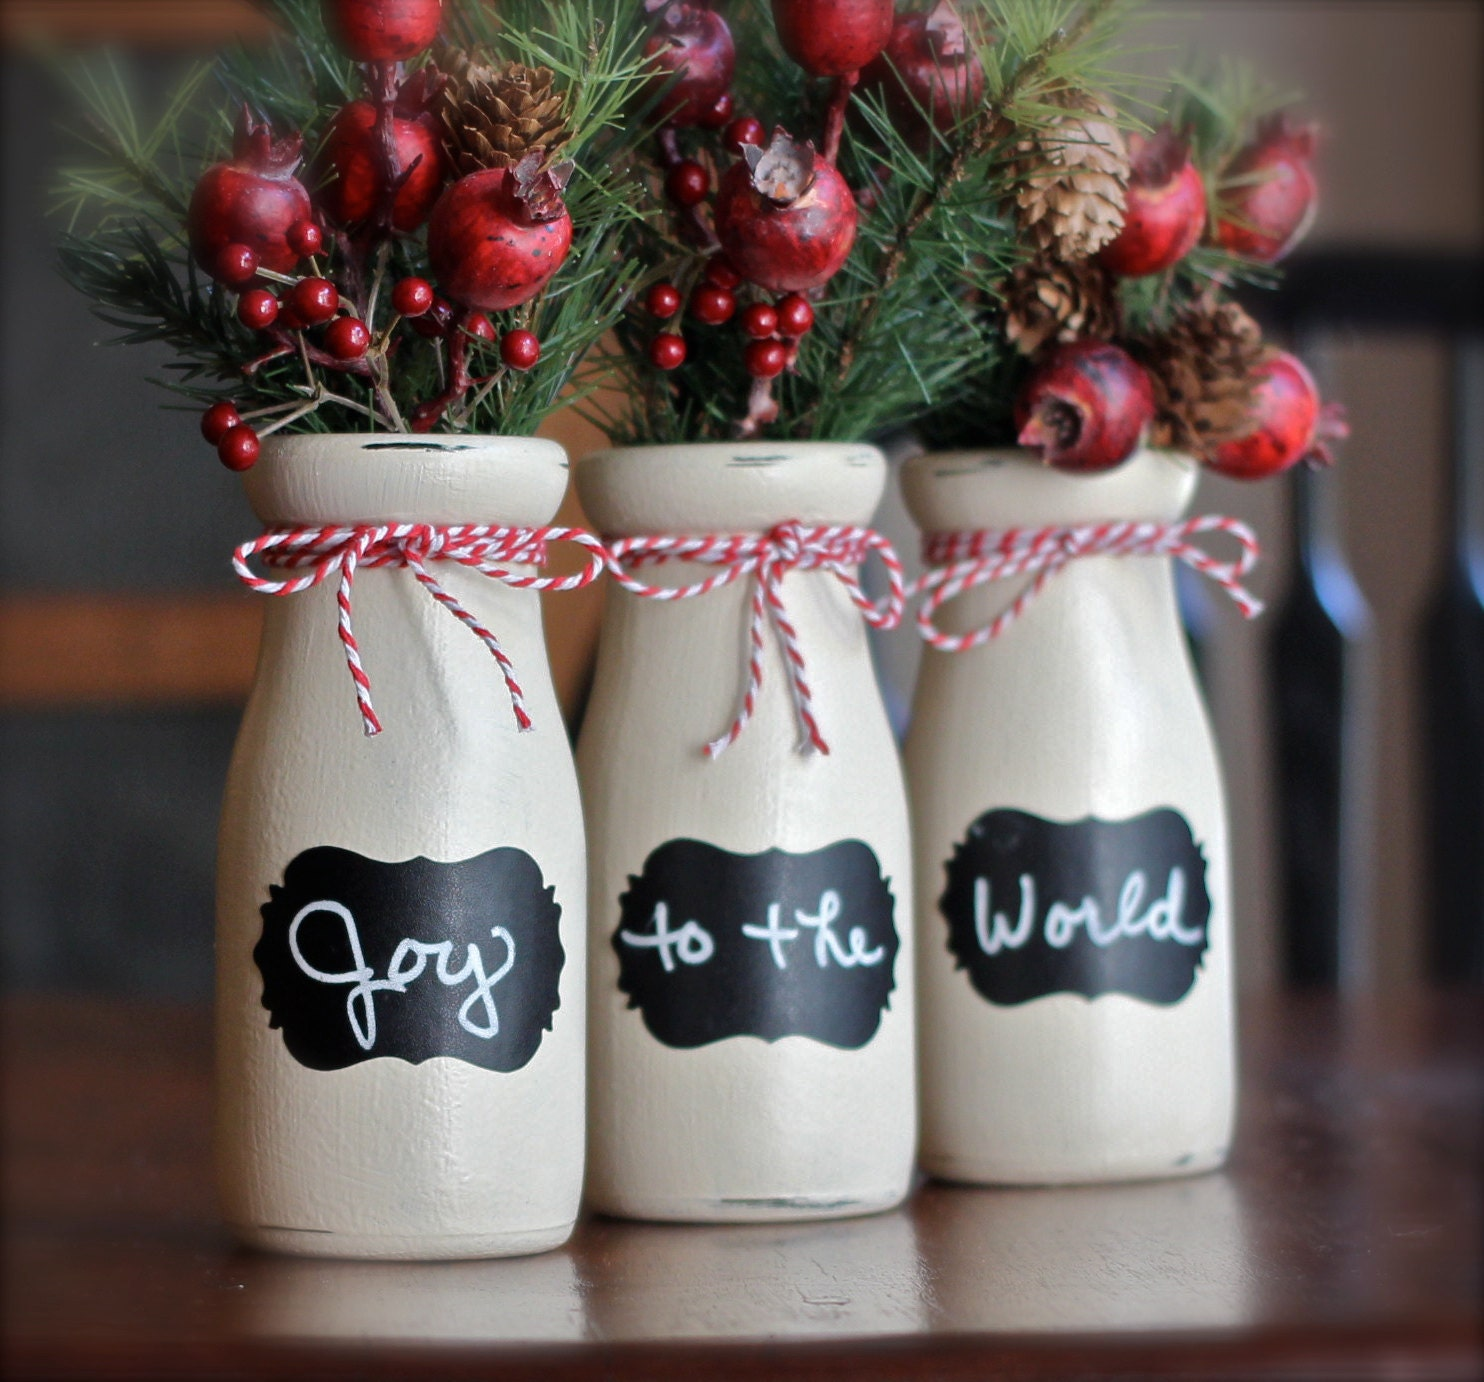 Christmas Decorations Holiday Decorations Decor: Rustic Christmas Decor Rustic Christmas Decorations Vase